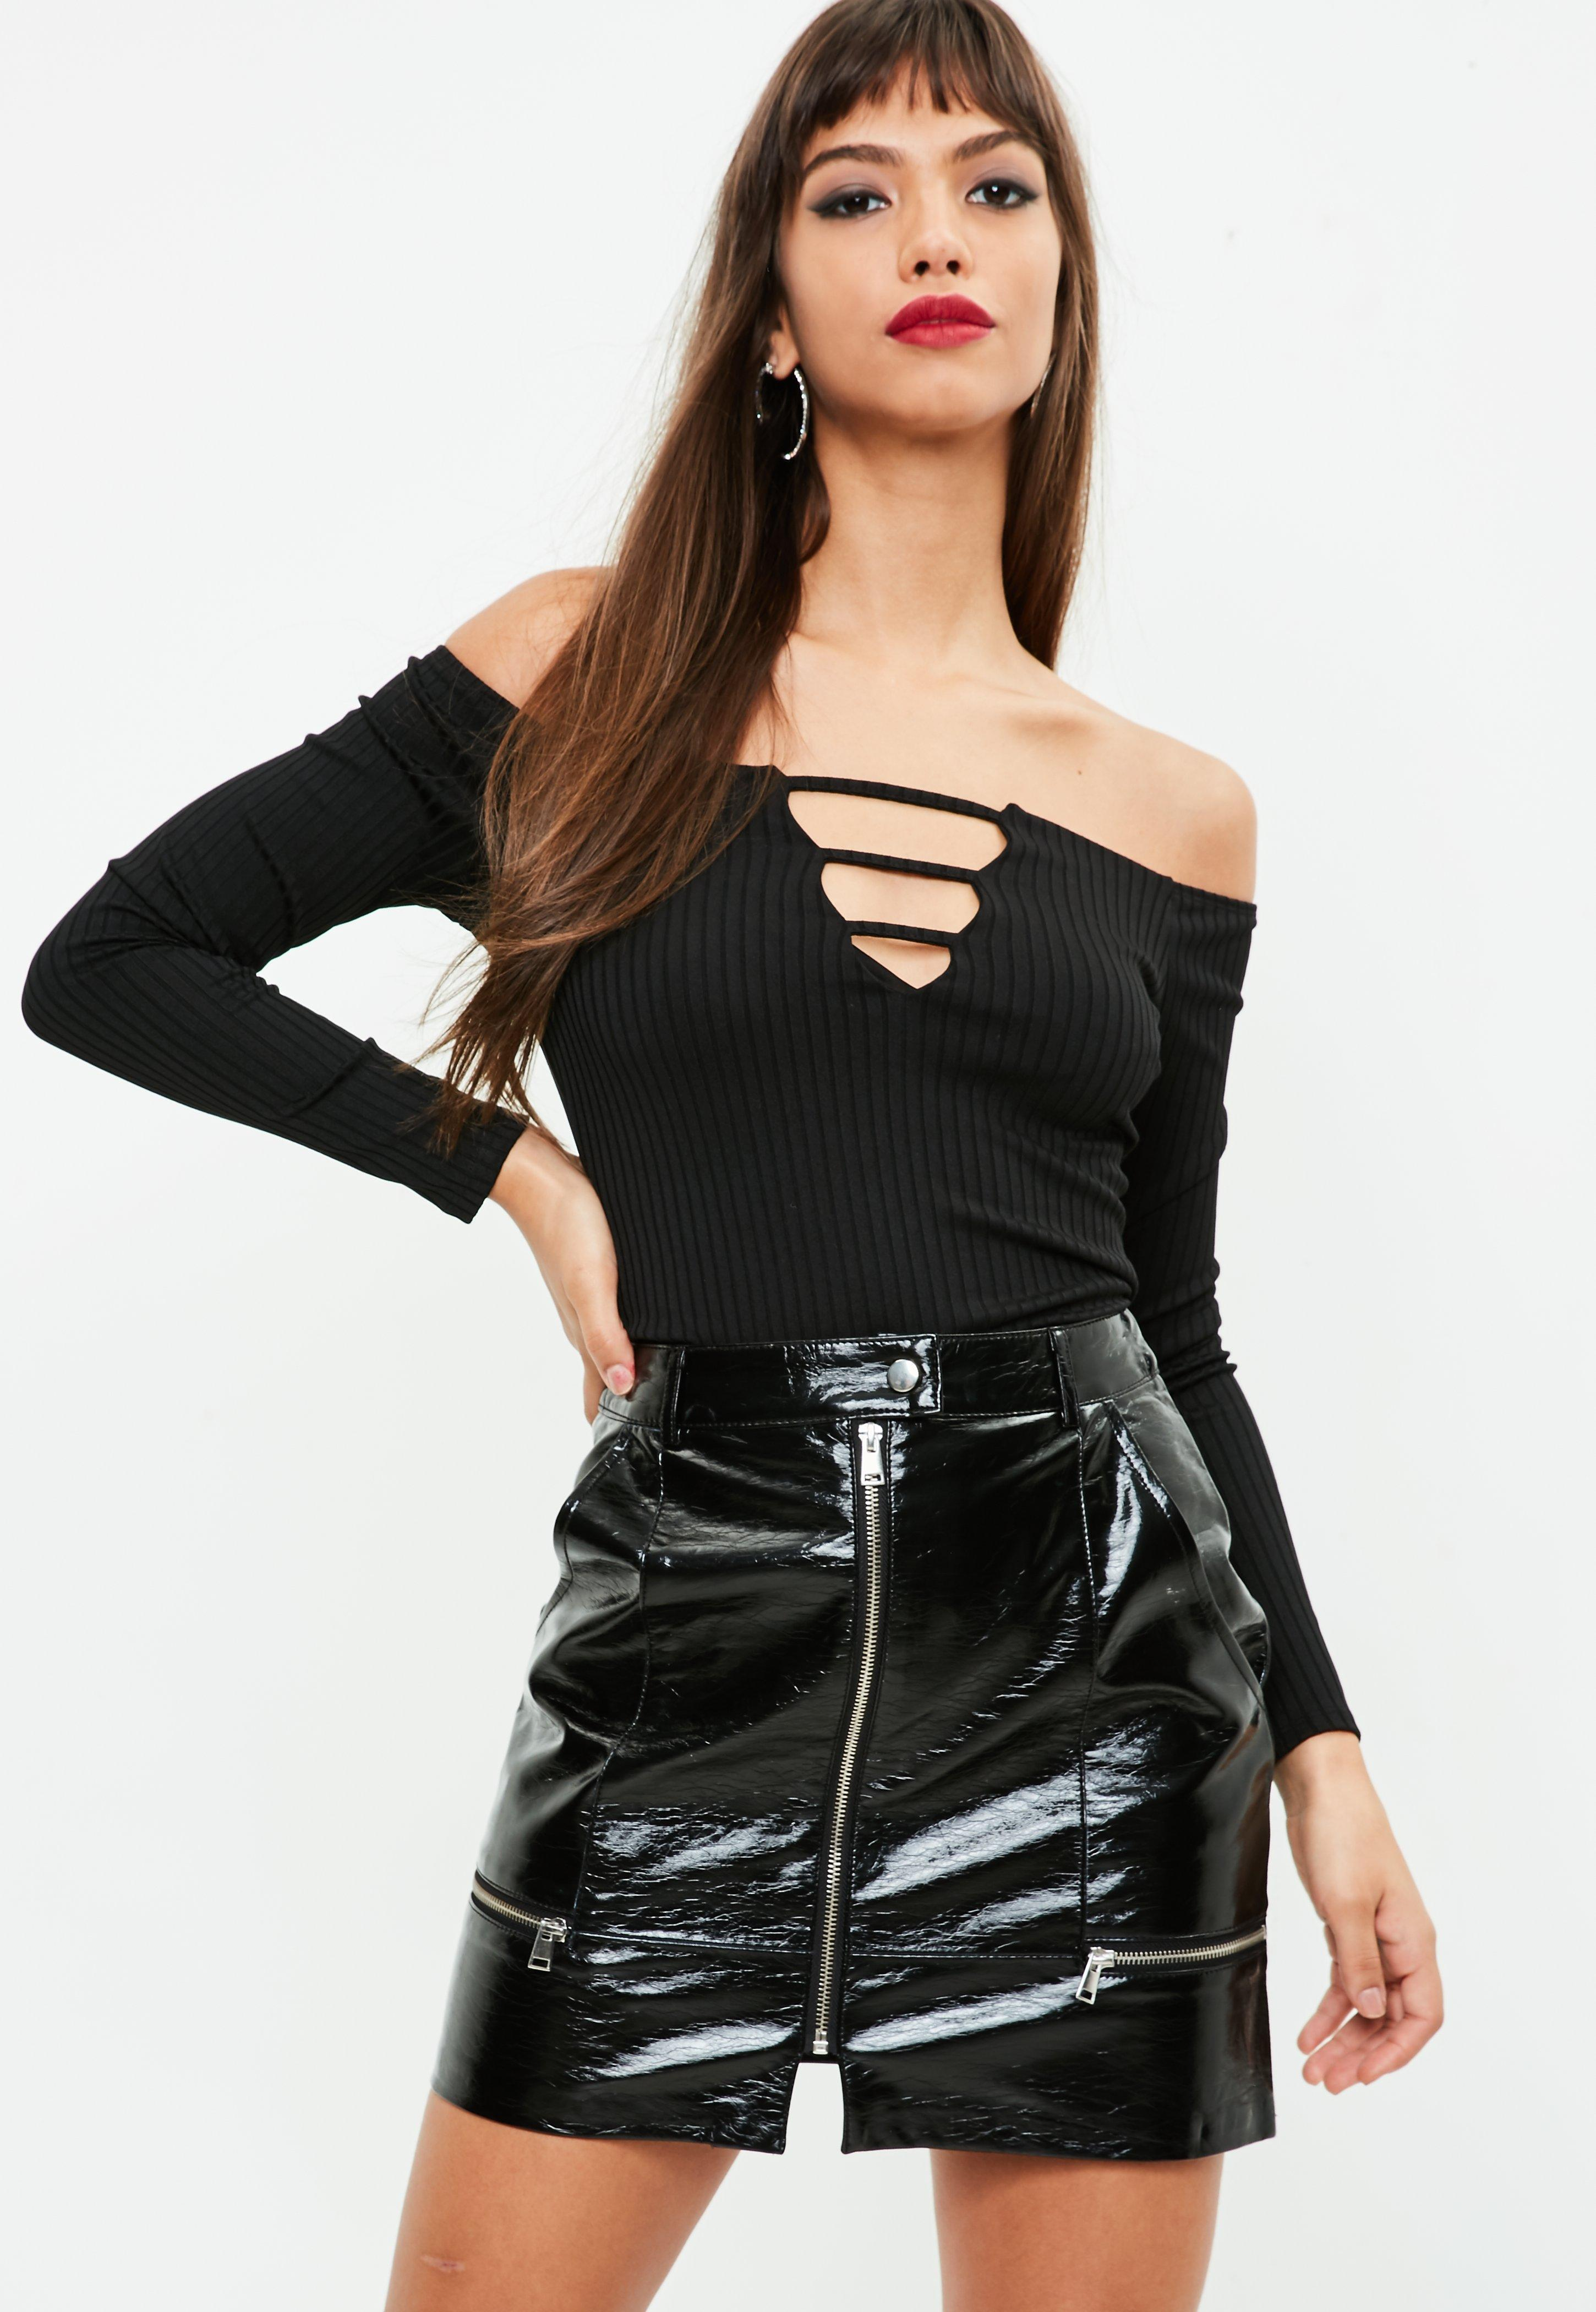 905e336bdc Missguided Black Vinyl Zip Detail Mini Skirt in Black - Lyst